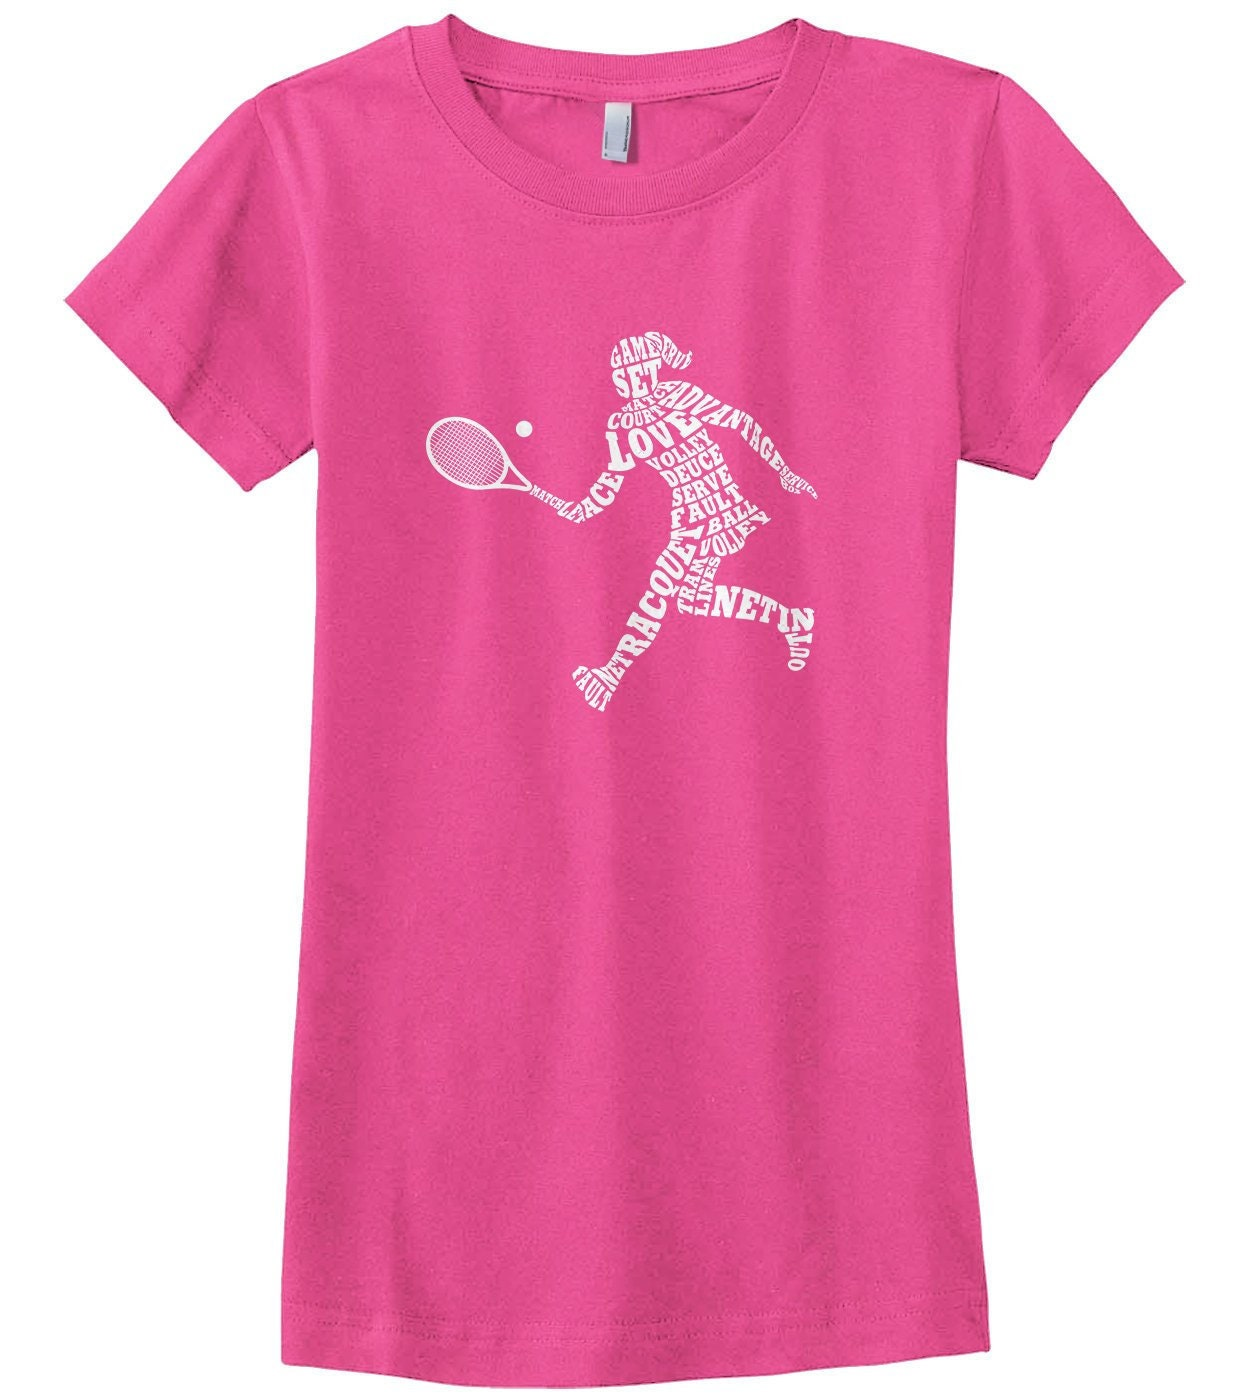 Girls Tennis Player Typography - Girls Fitted Youth T-shirt Unisex Tshirt